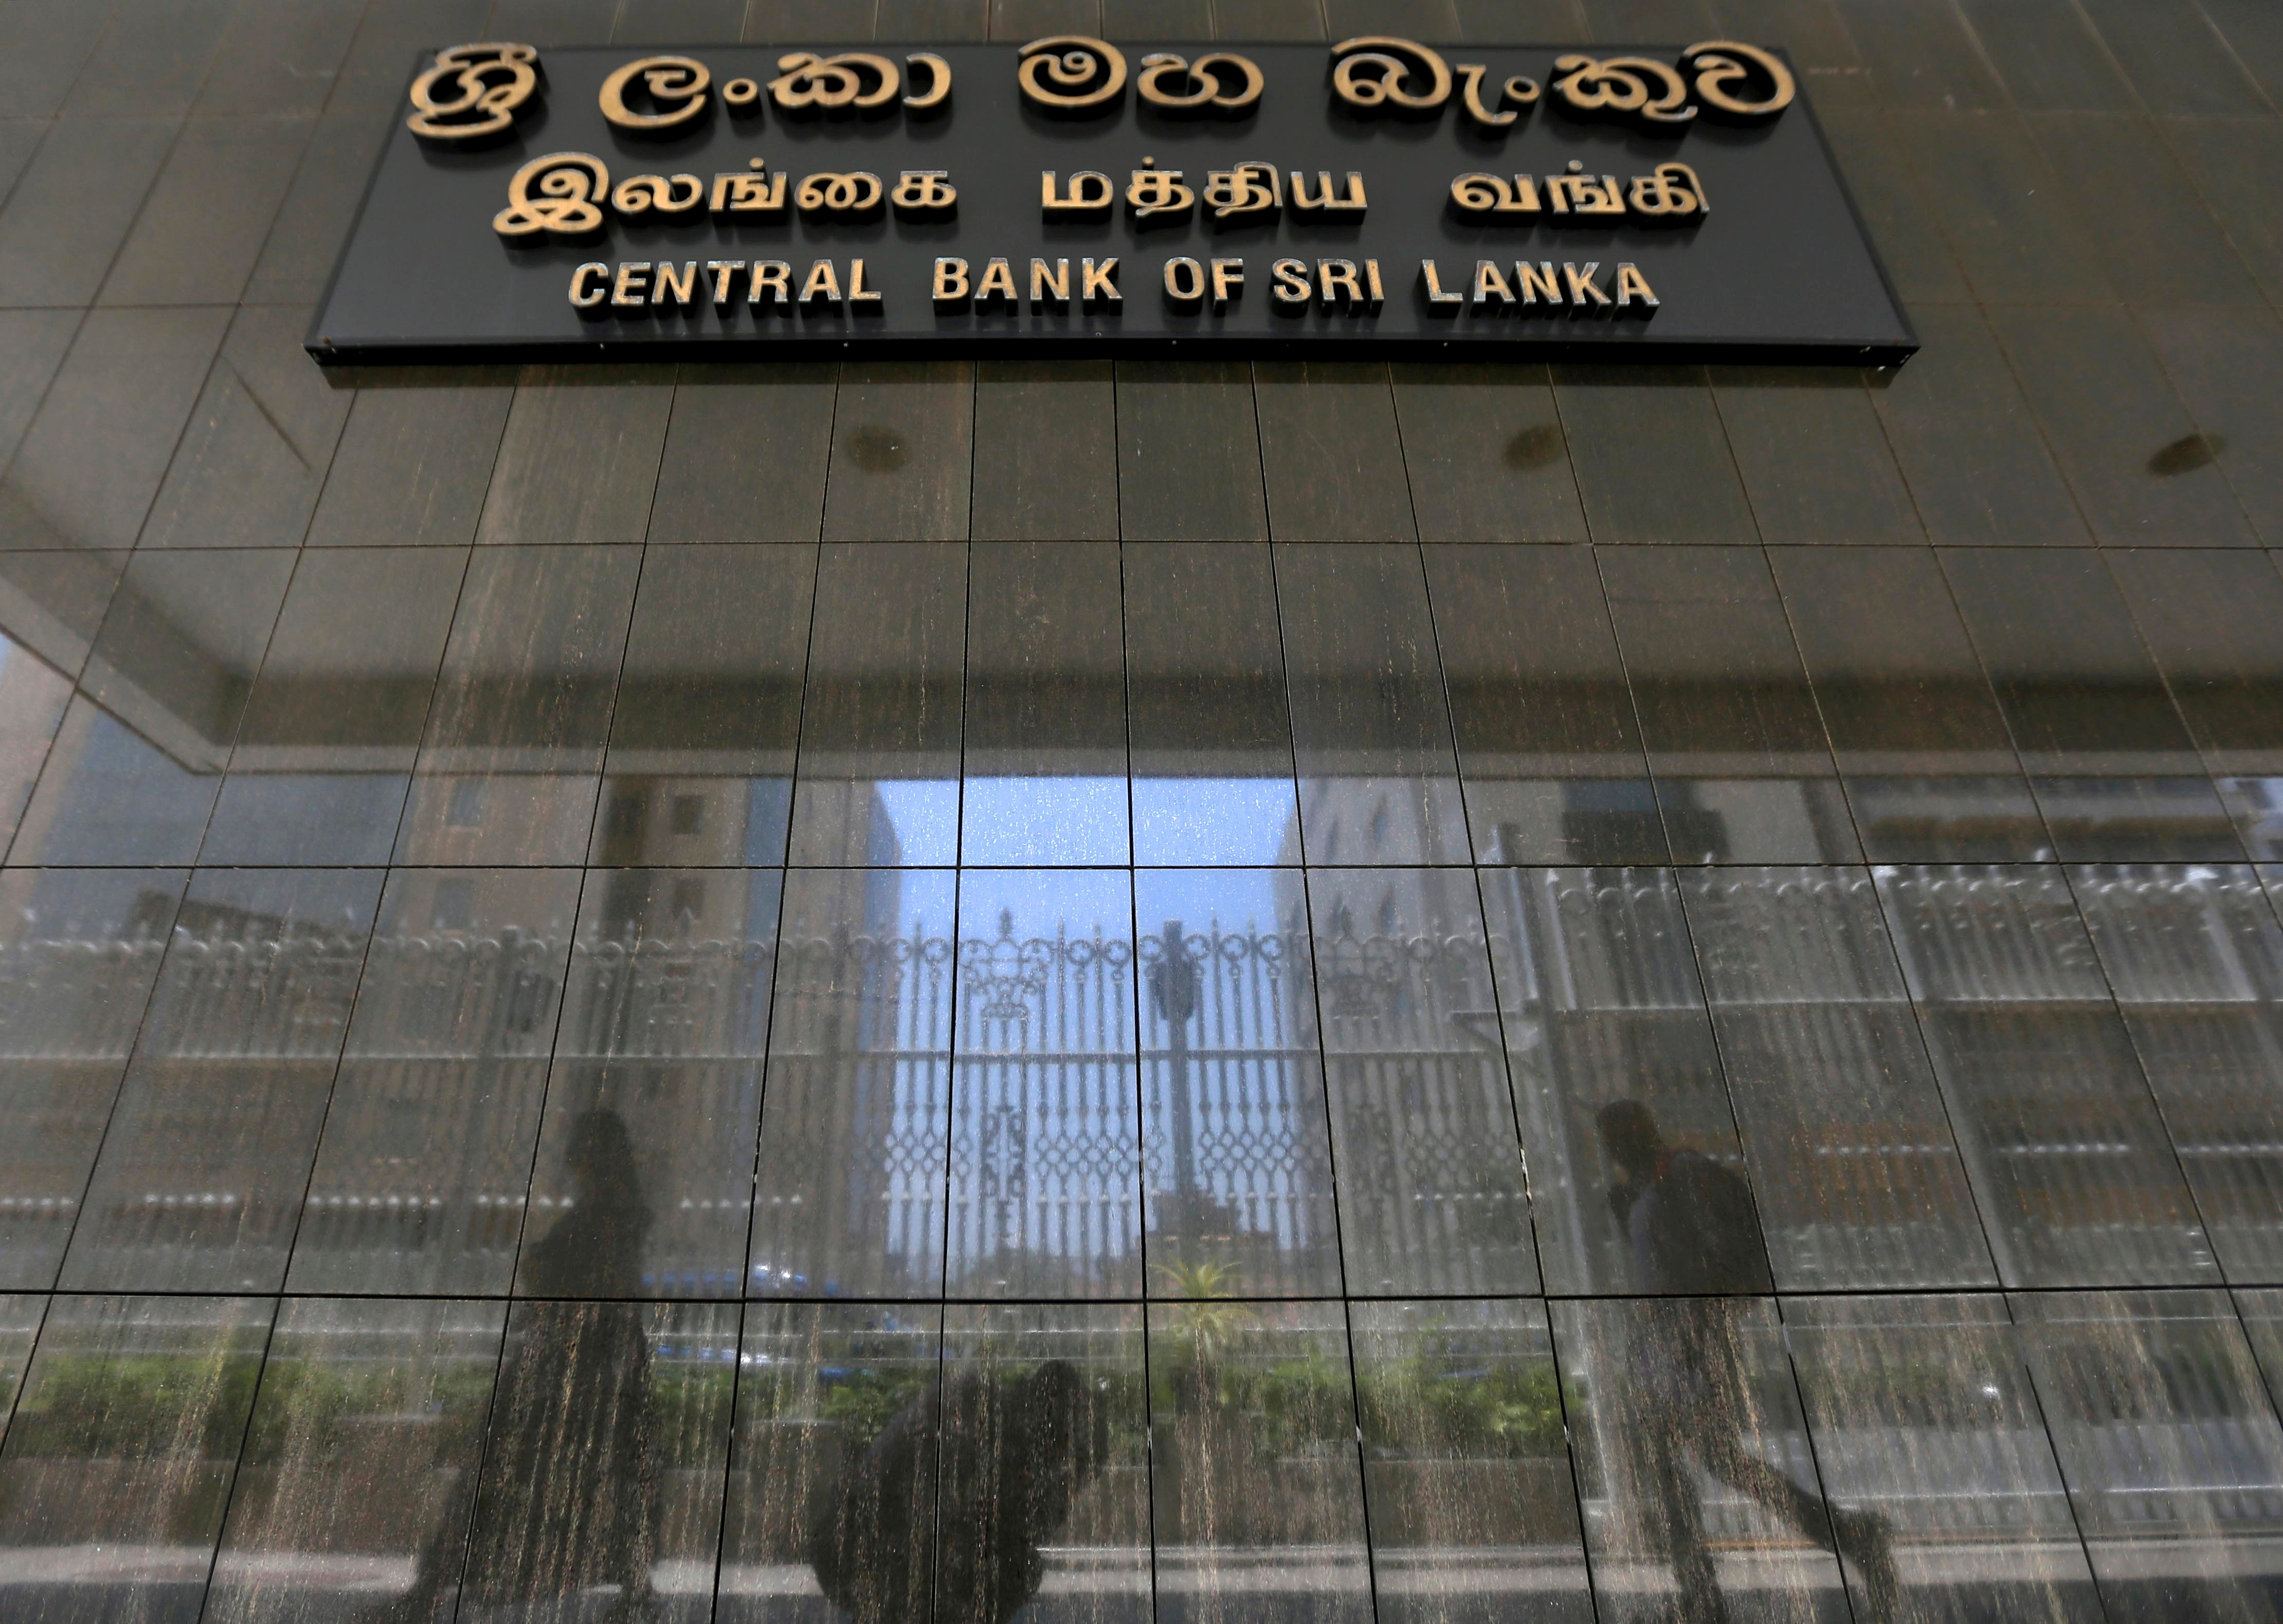 People walk past the main entrance of the Sri Lanka's Central Bank in Colombo, Sri Lanka March 24, 2017. REUTERS/Dinuka Liyanawatte/File Photo